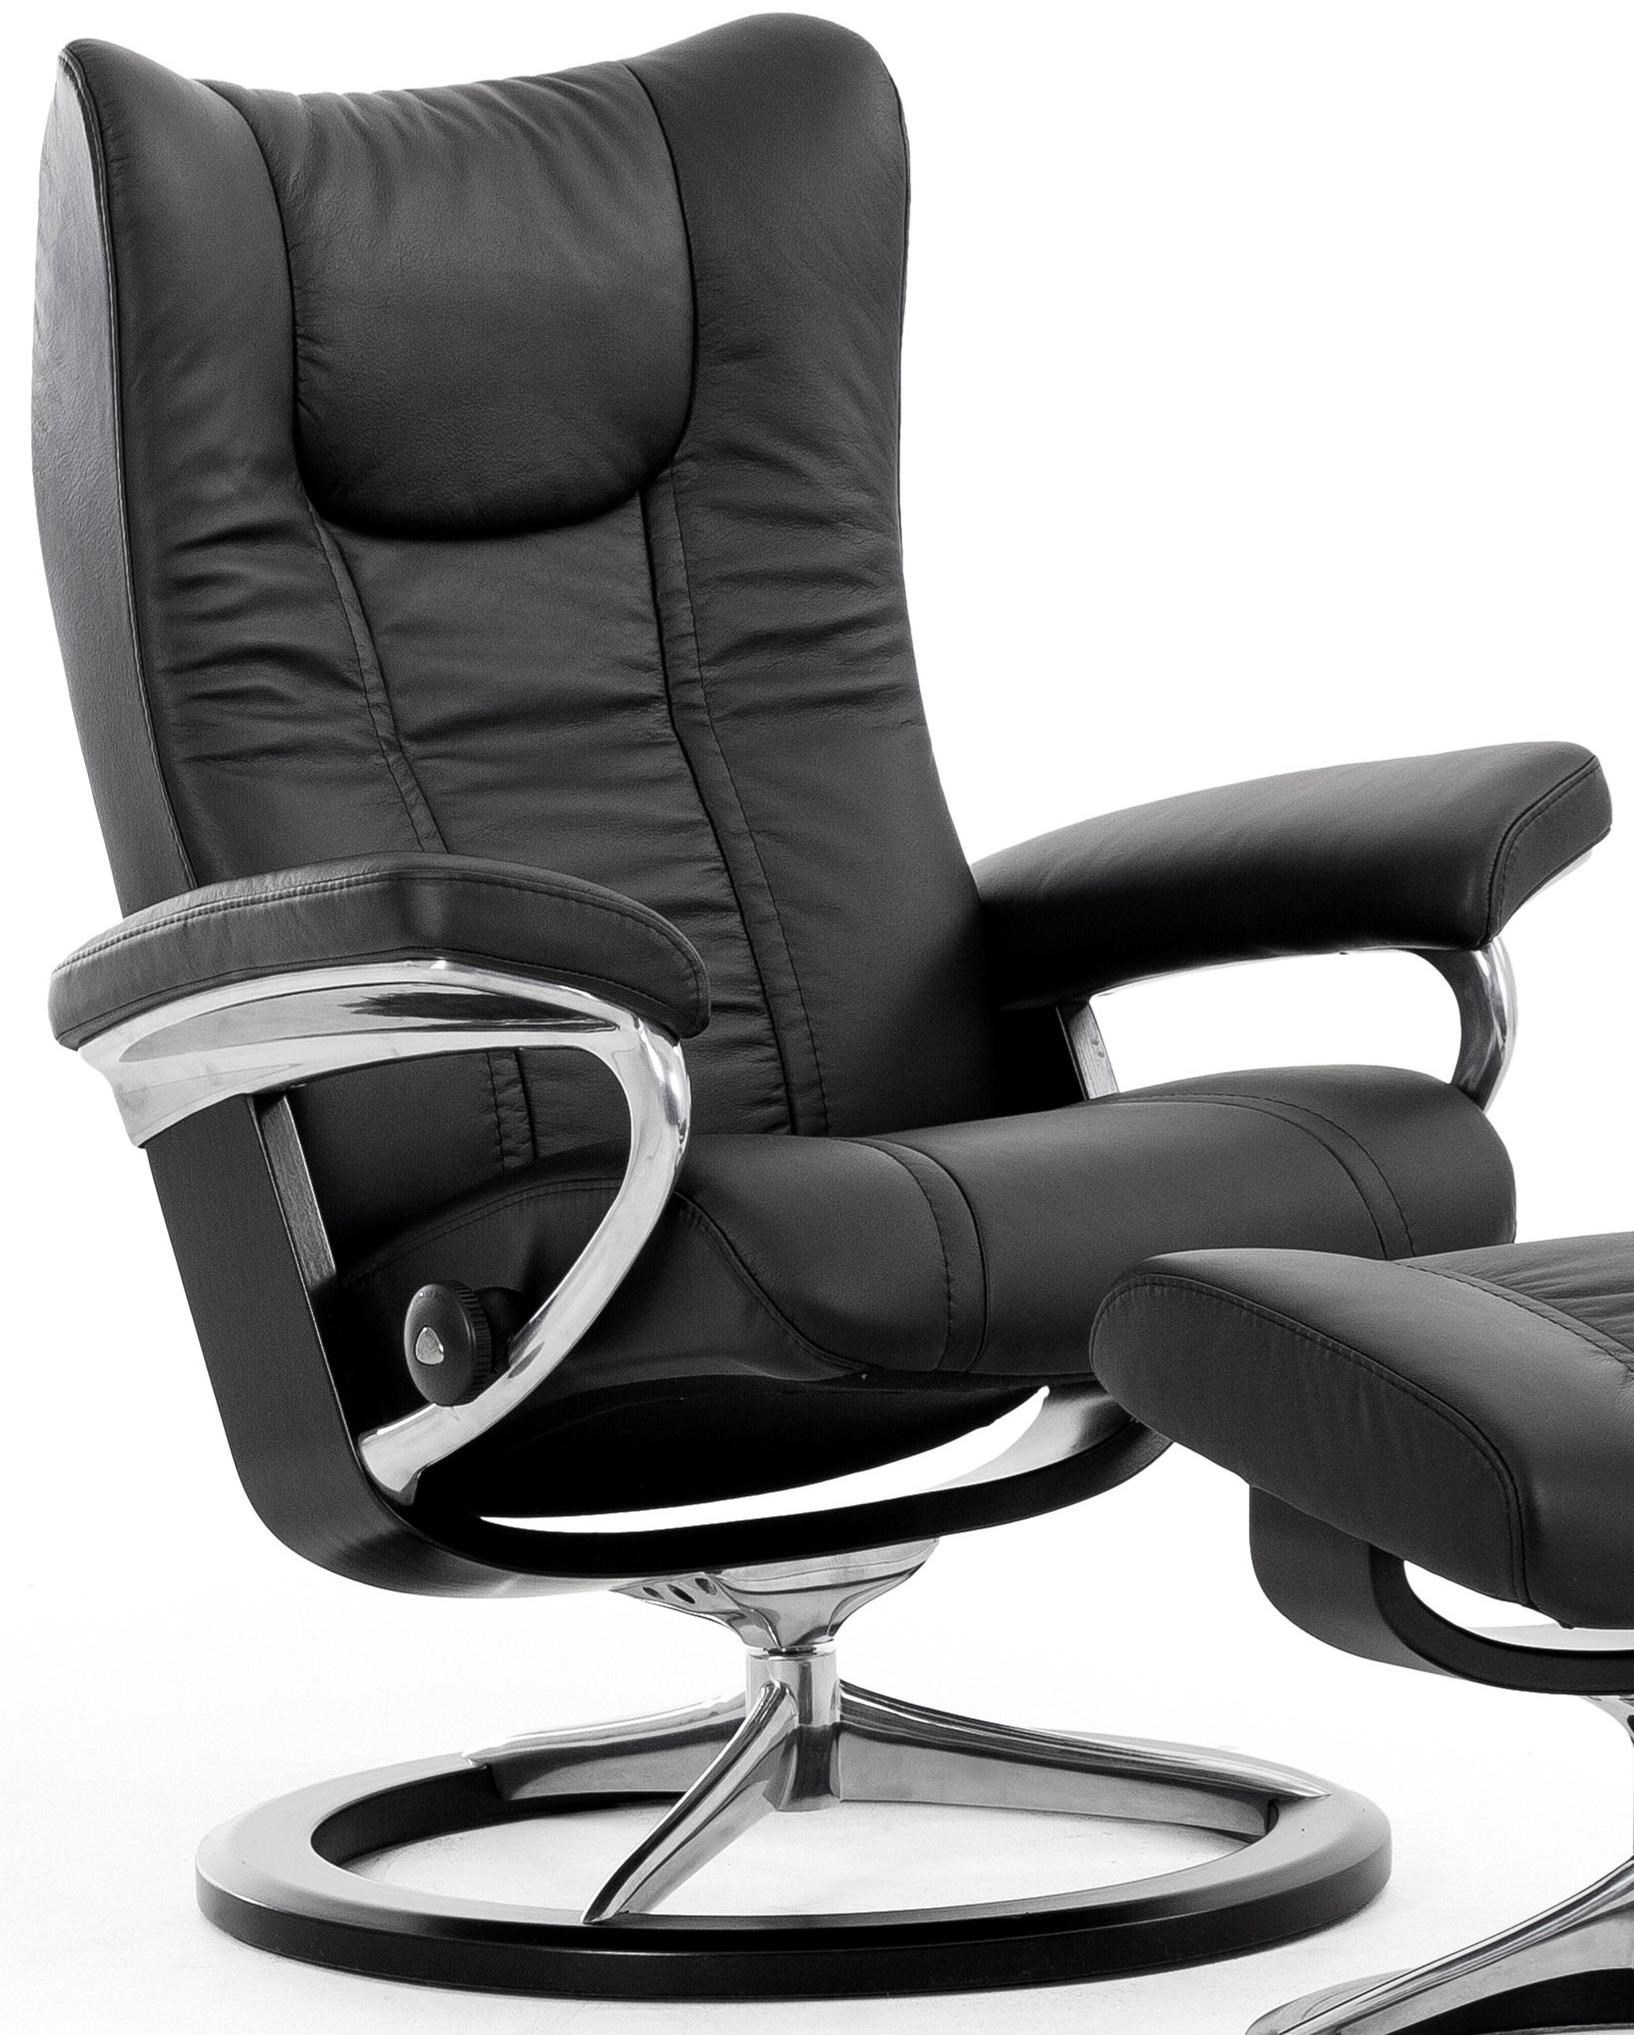 Large Reclining Chair with Signature Base